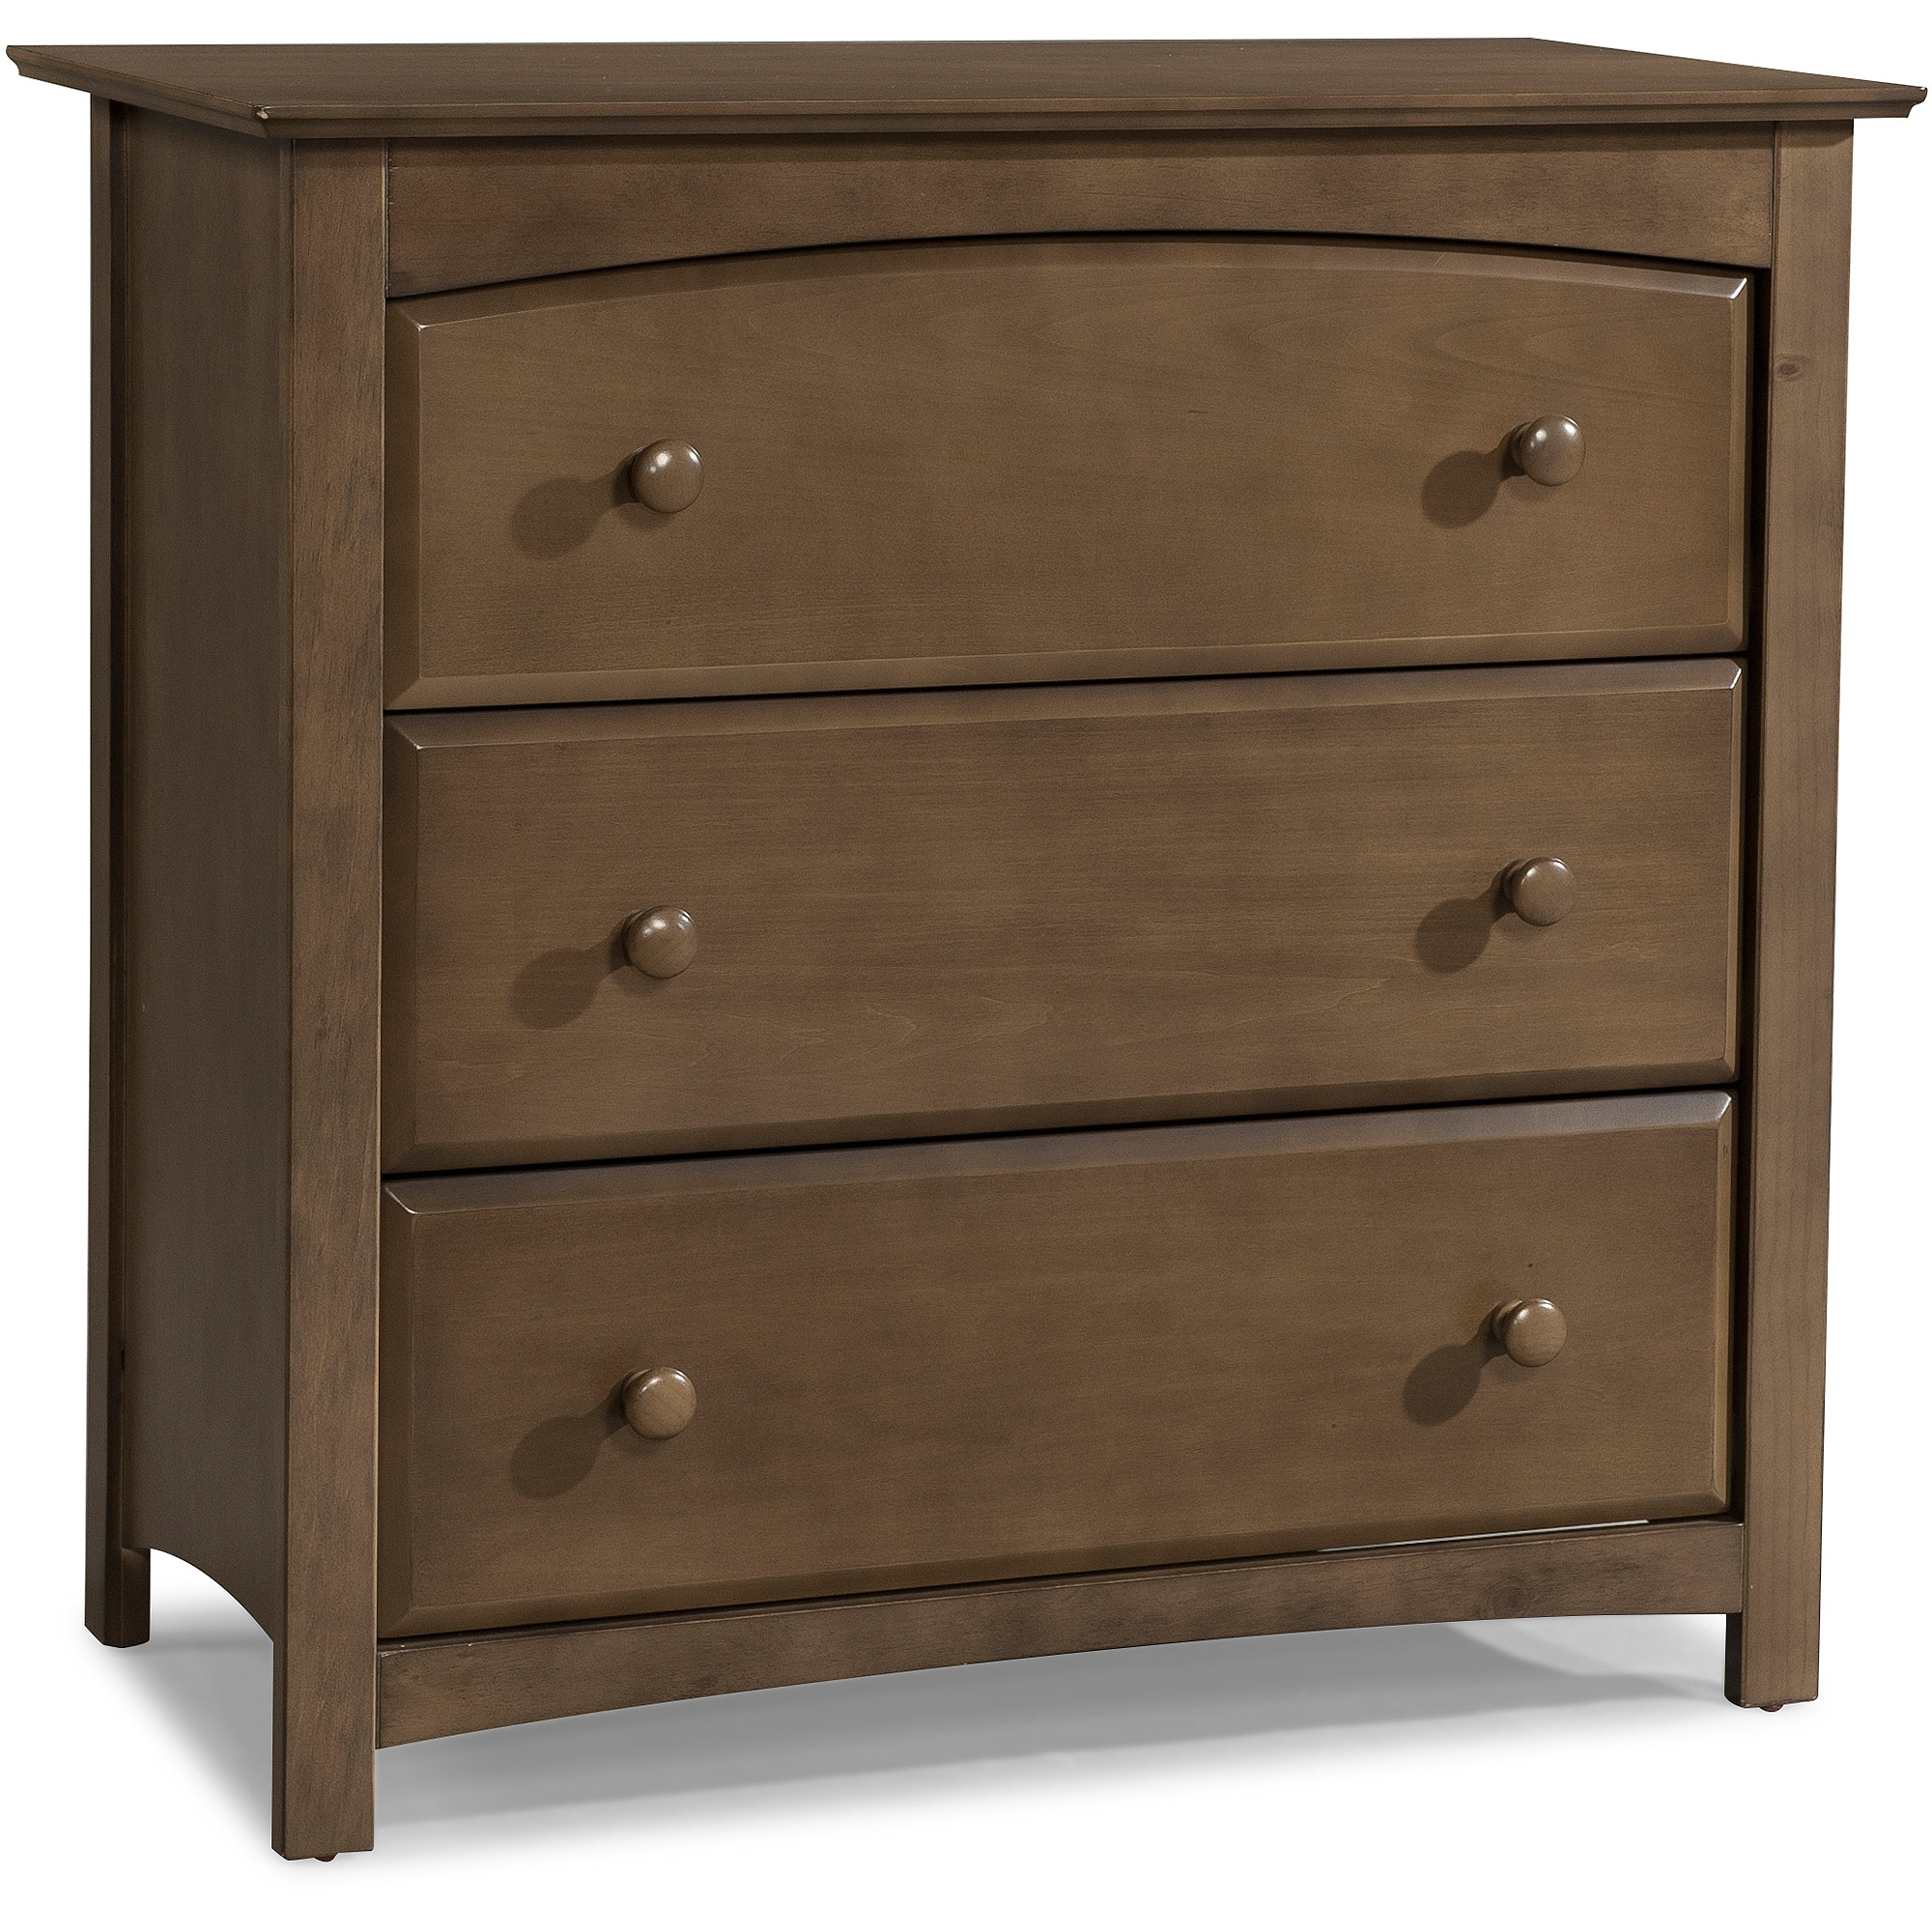 Storkcraft Kenton 3-Drawer Universal Dresser